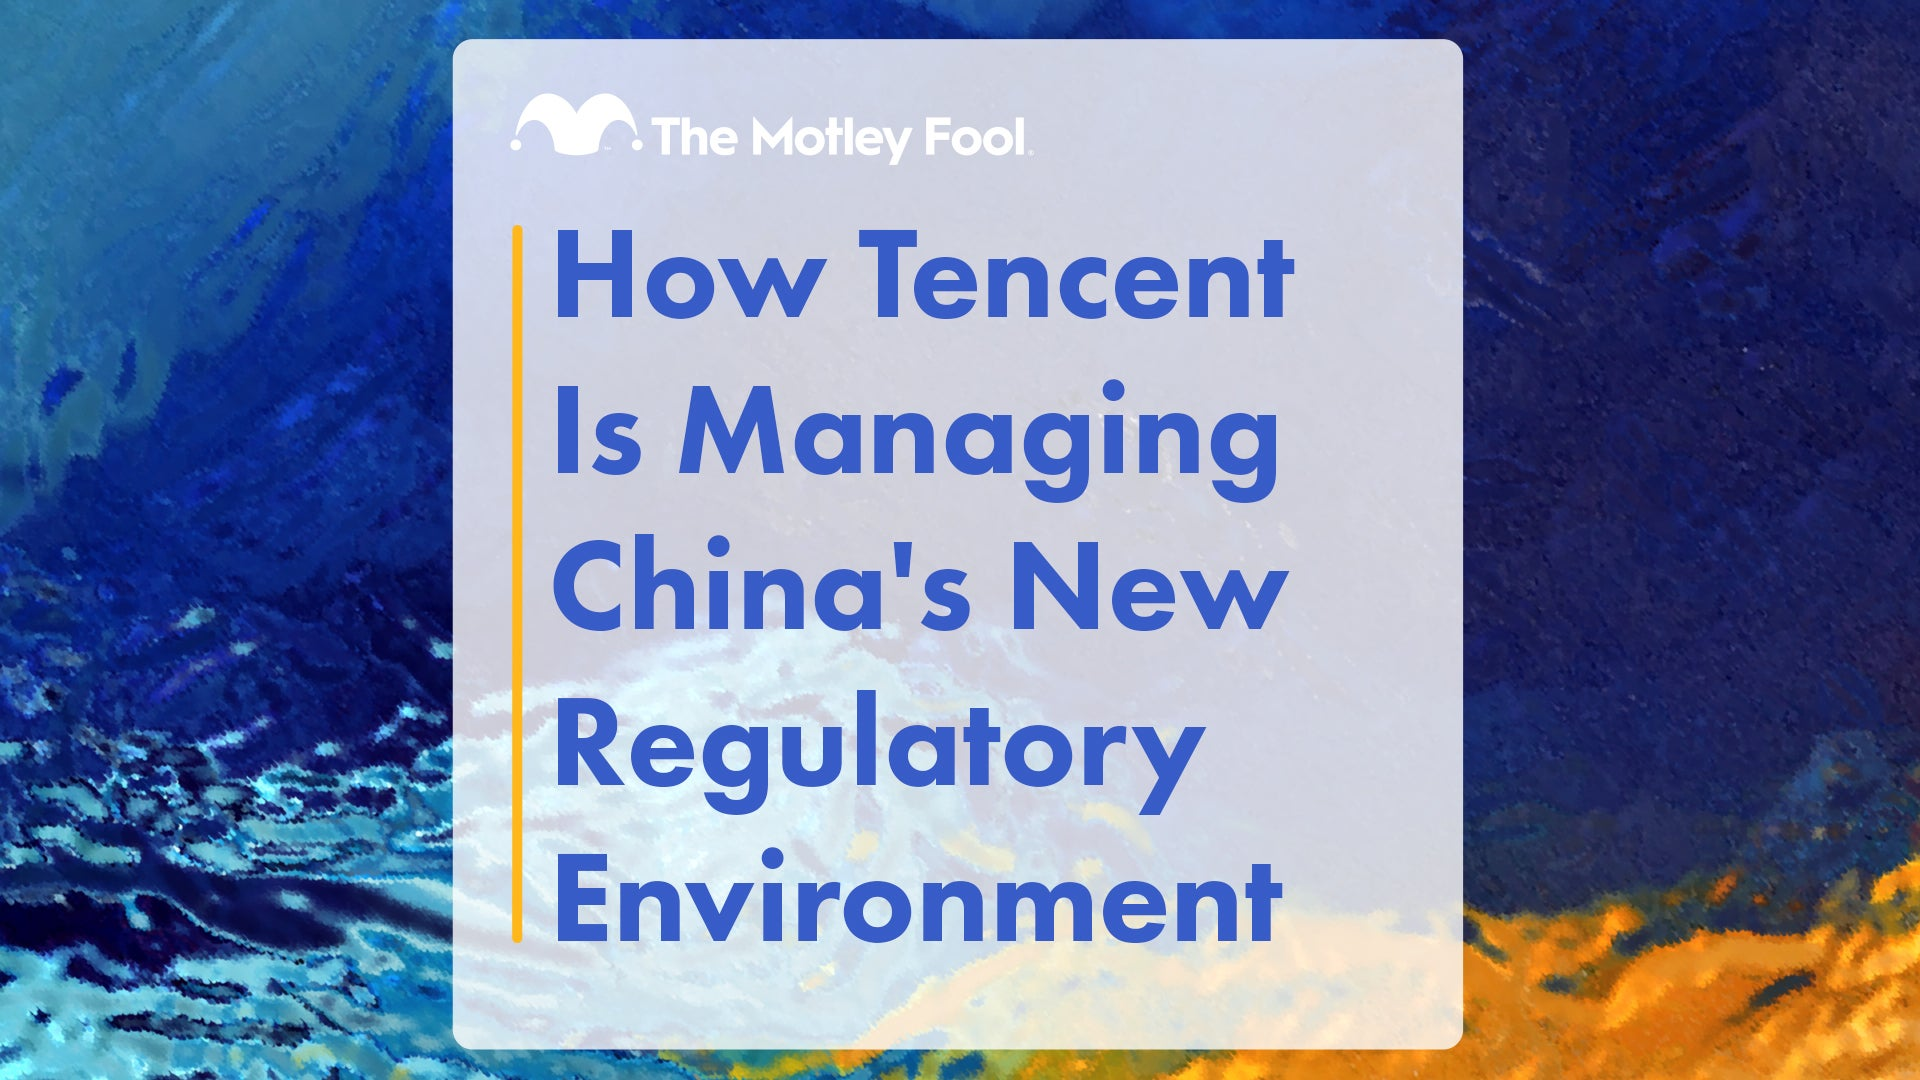 How Tencent Is Managing China's New Regulatory Environment